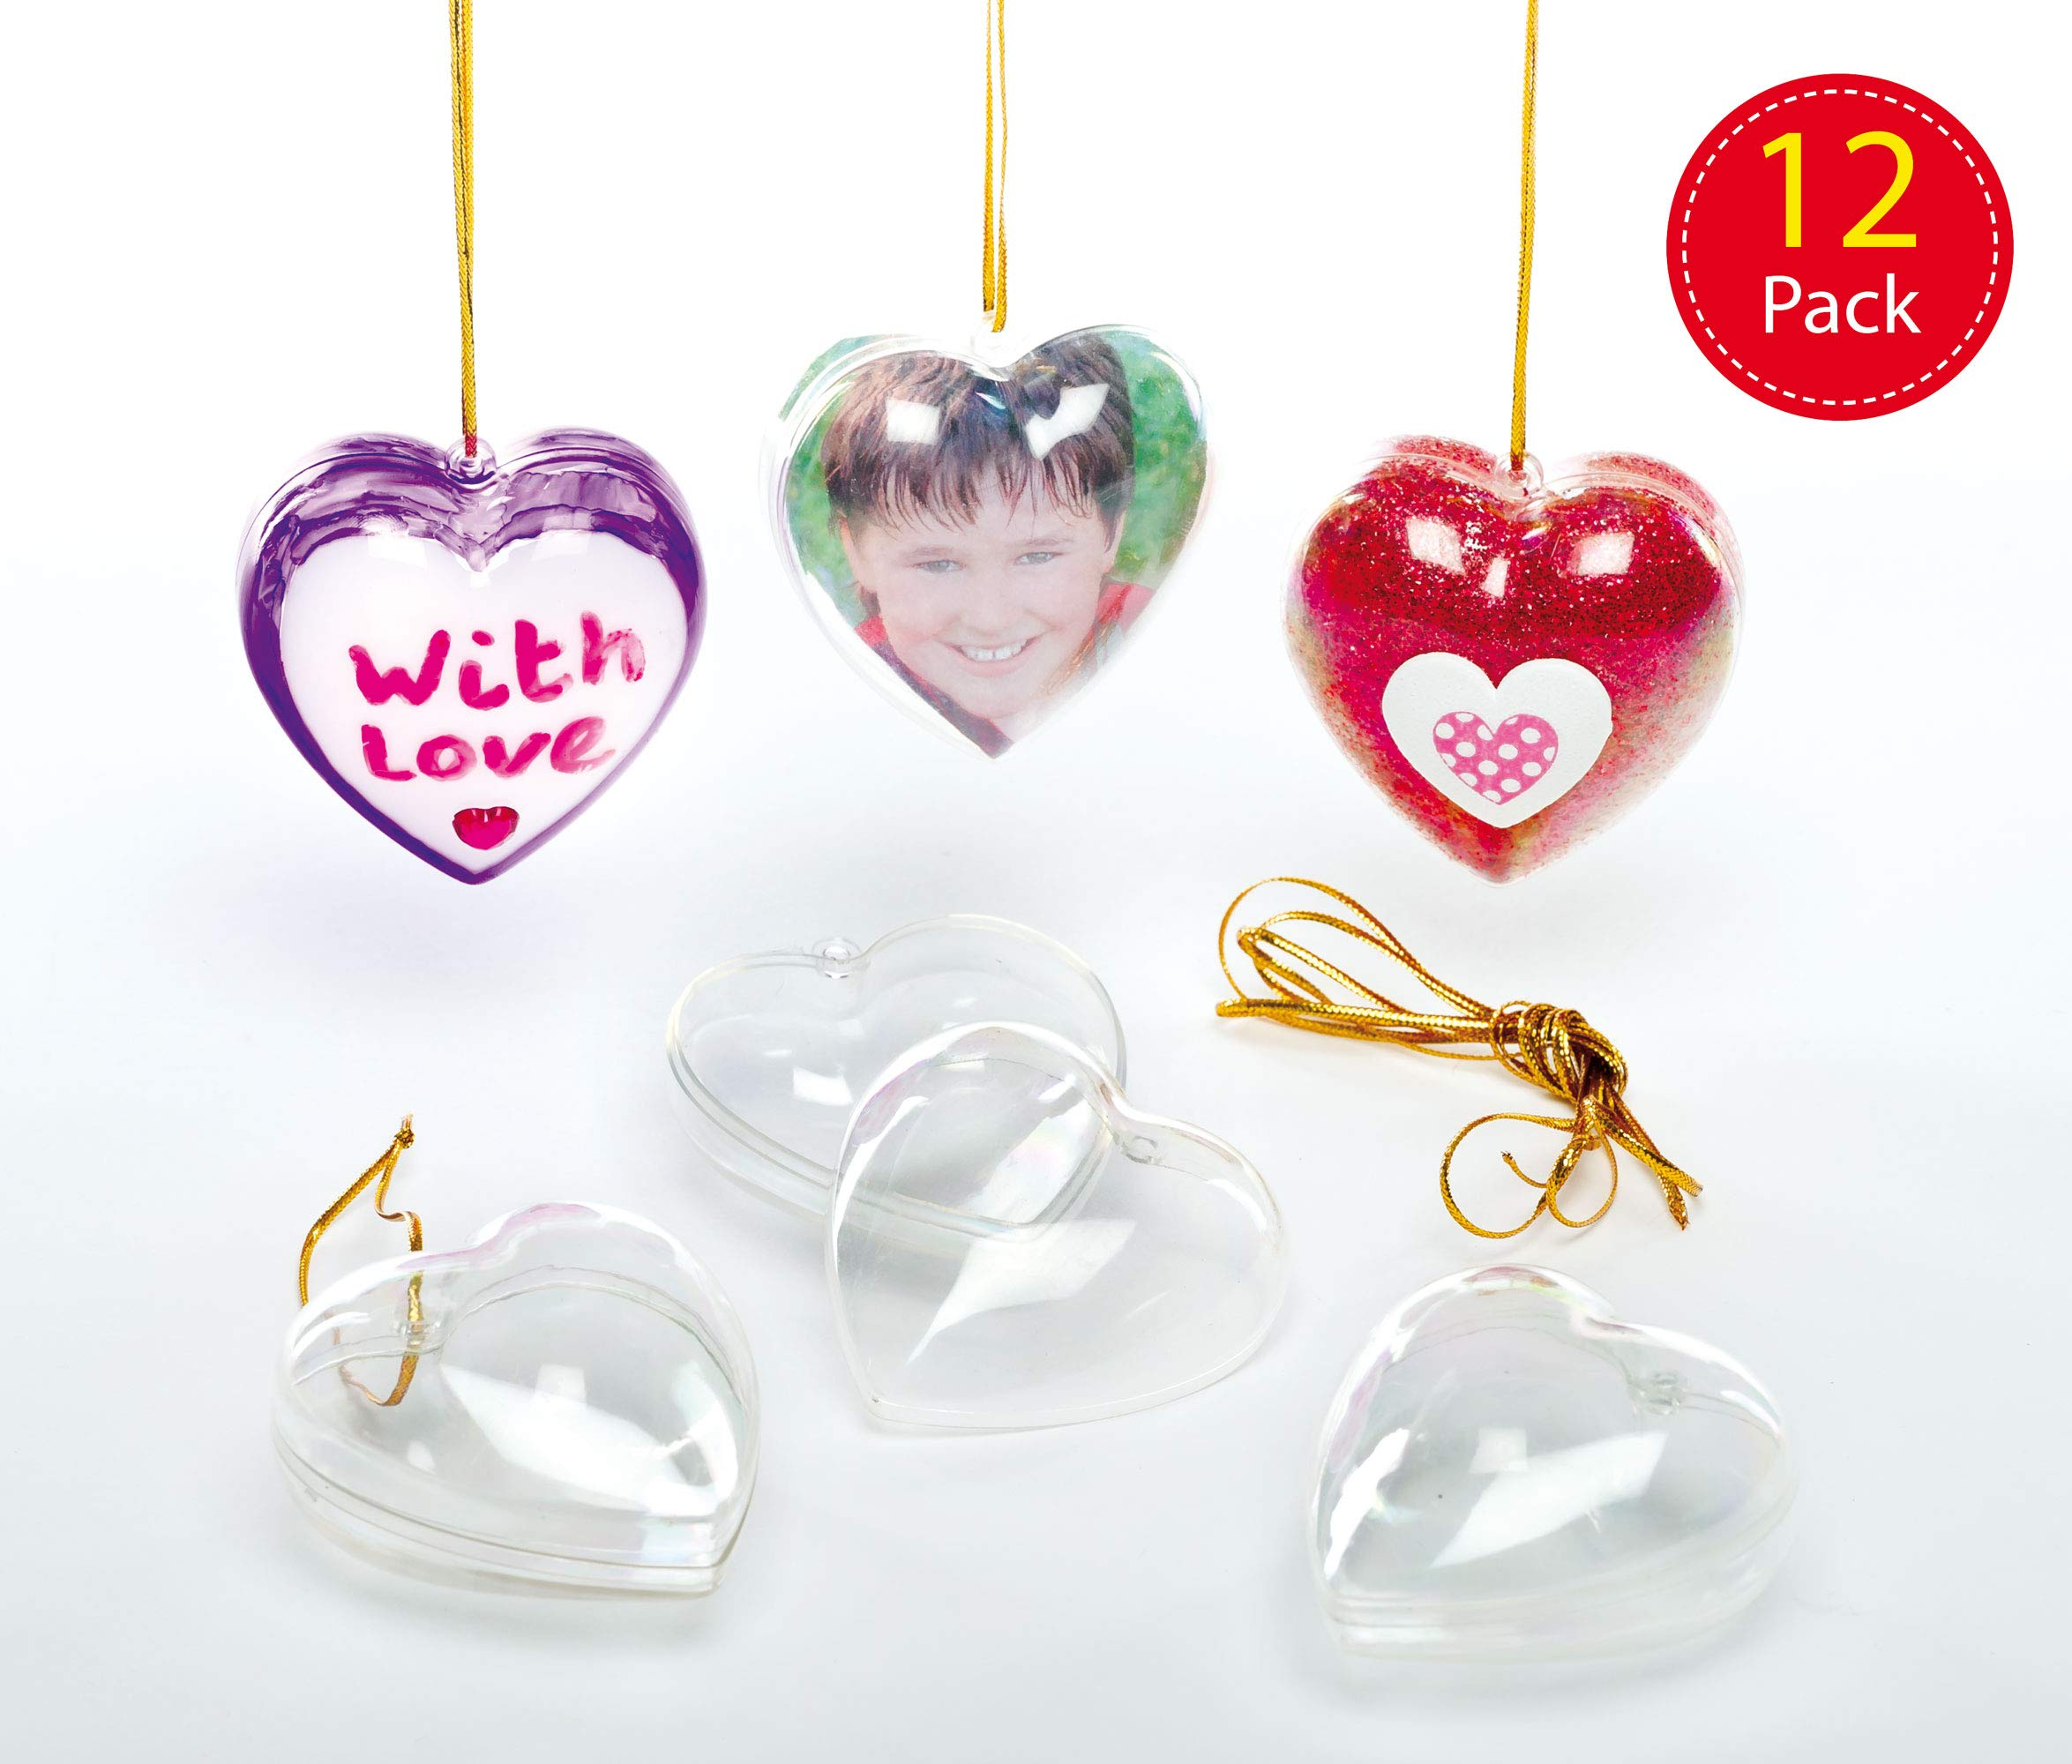 Baker Ross Transparent Heart Baubles (Pack of 12) for Kids to Decorate and Hang on Christmas Tree